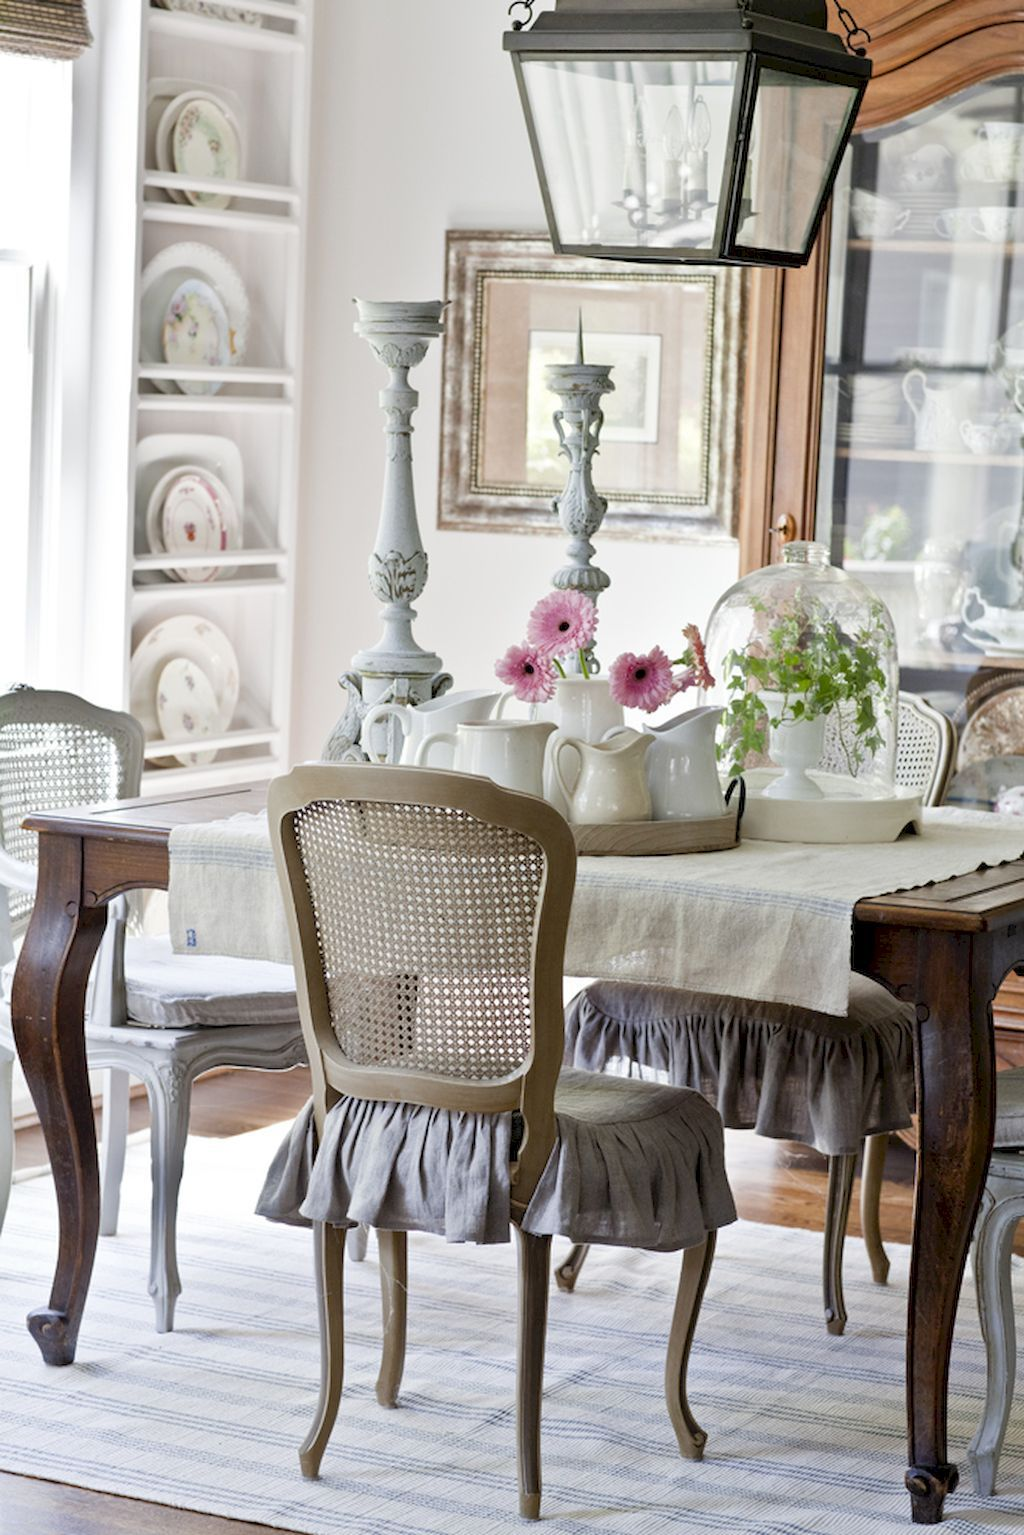 Nice 65 French Country Dining Room Furniture Design Ideas Https French Country Dining Room Table French Country Dining Room French Country Dining Room Decor